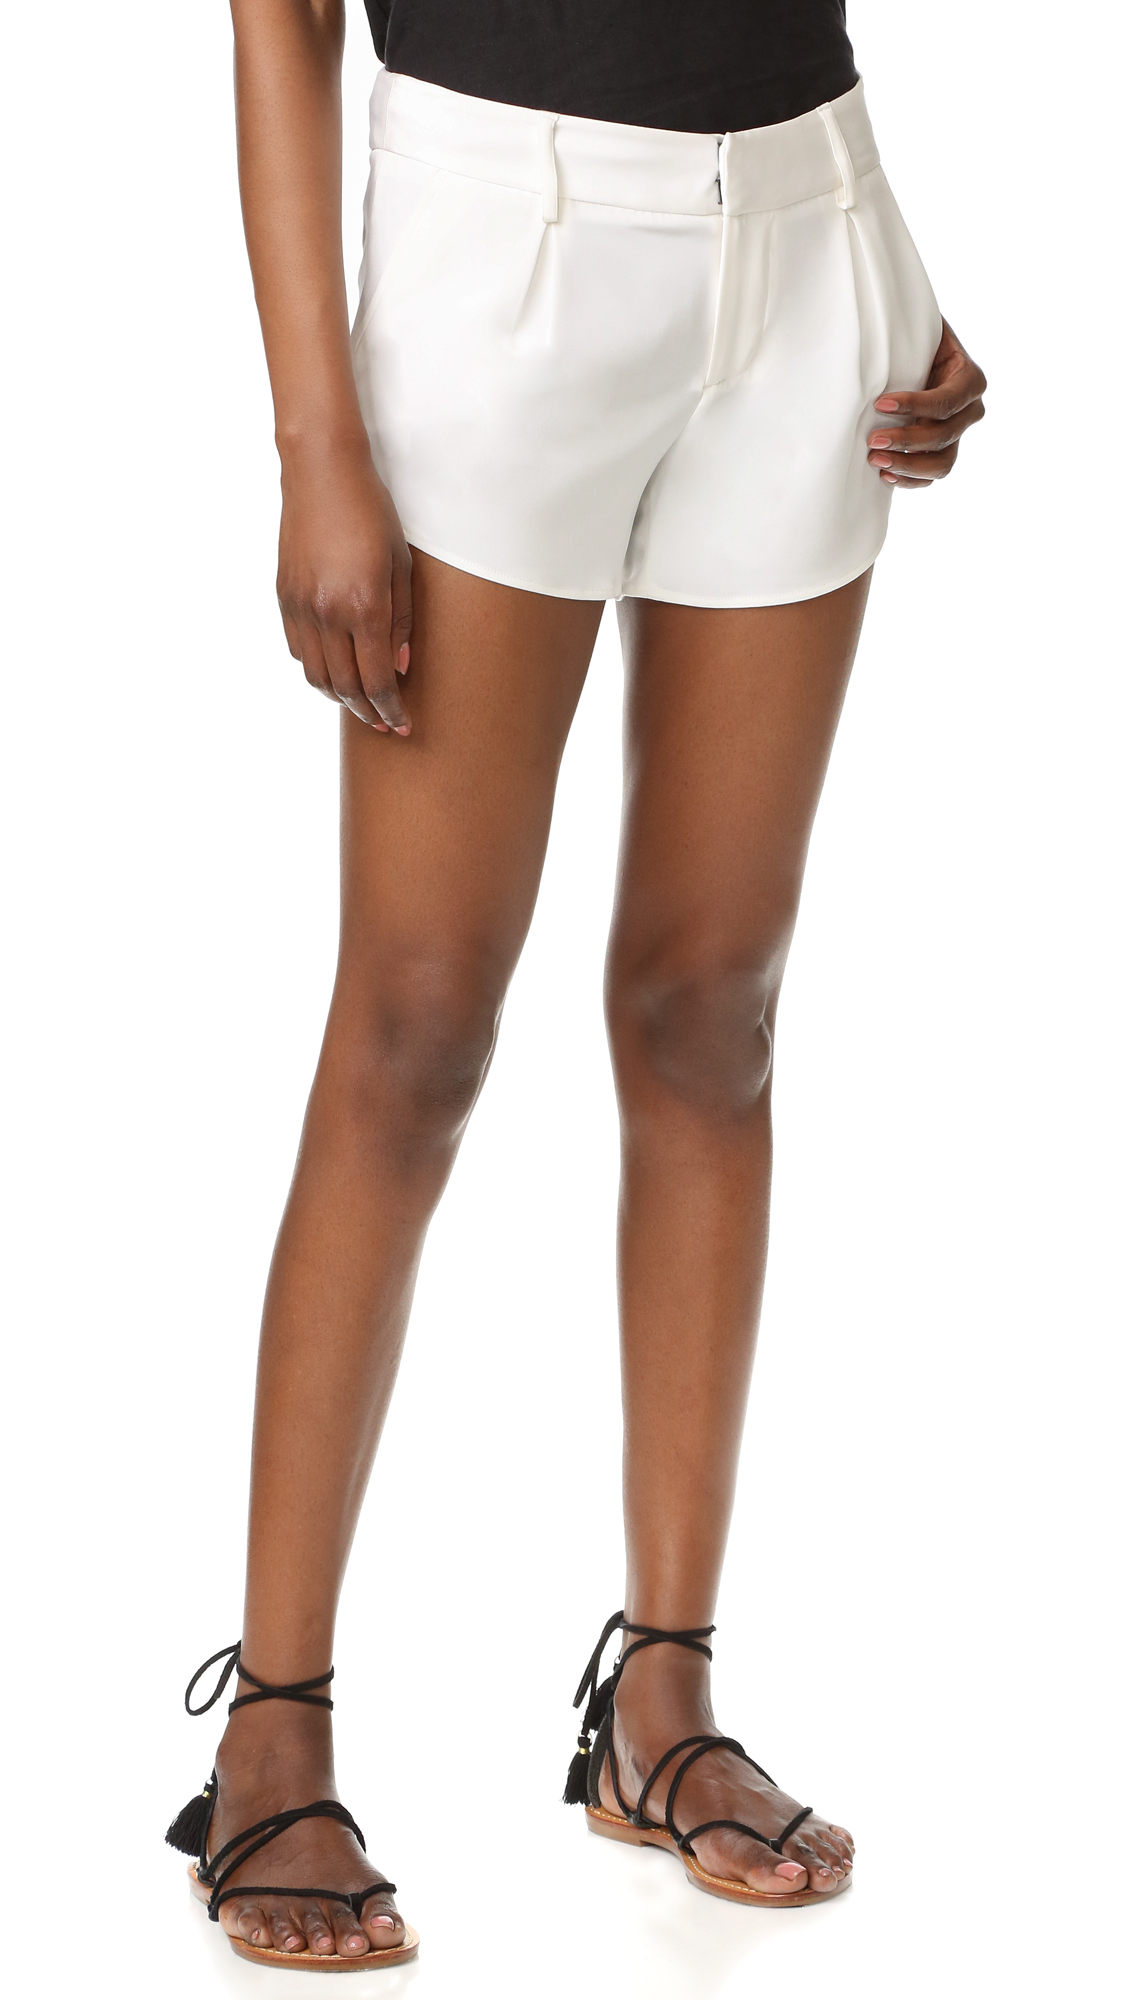 Alice + Olivia Butterfly Shorts - White at Shopbop